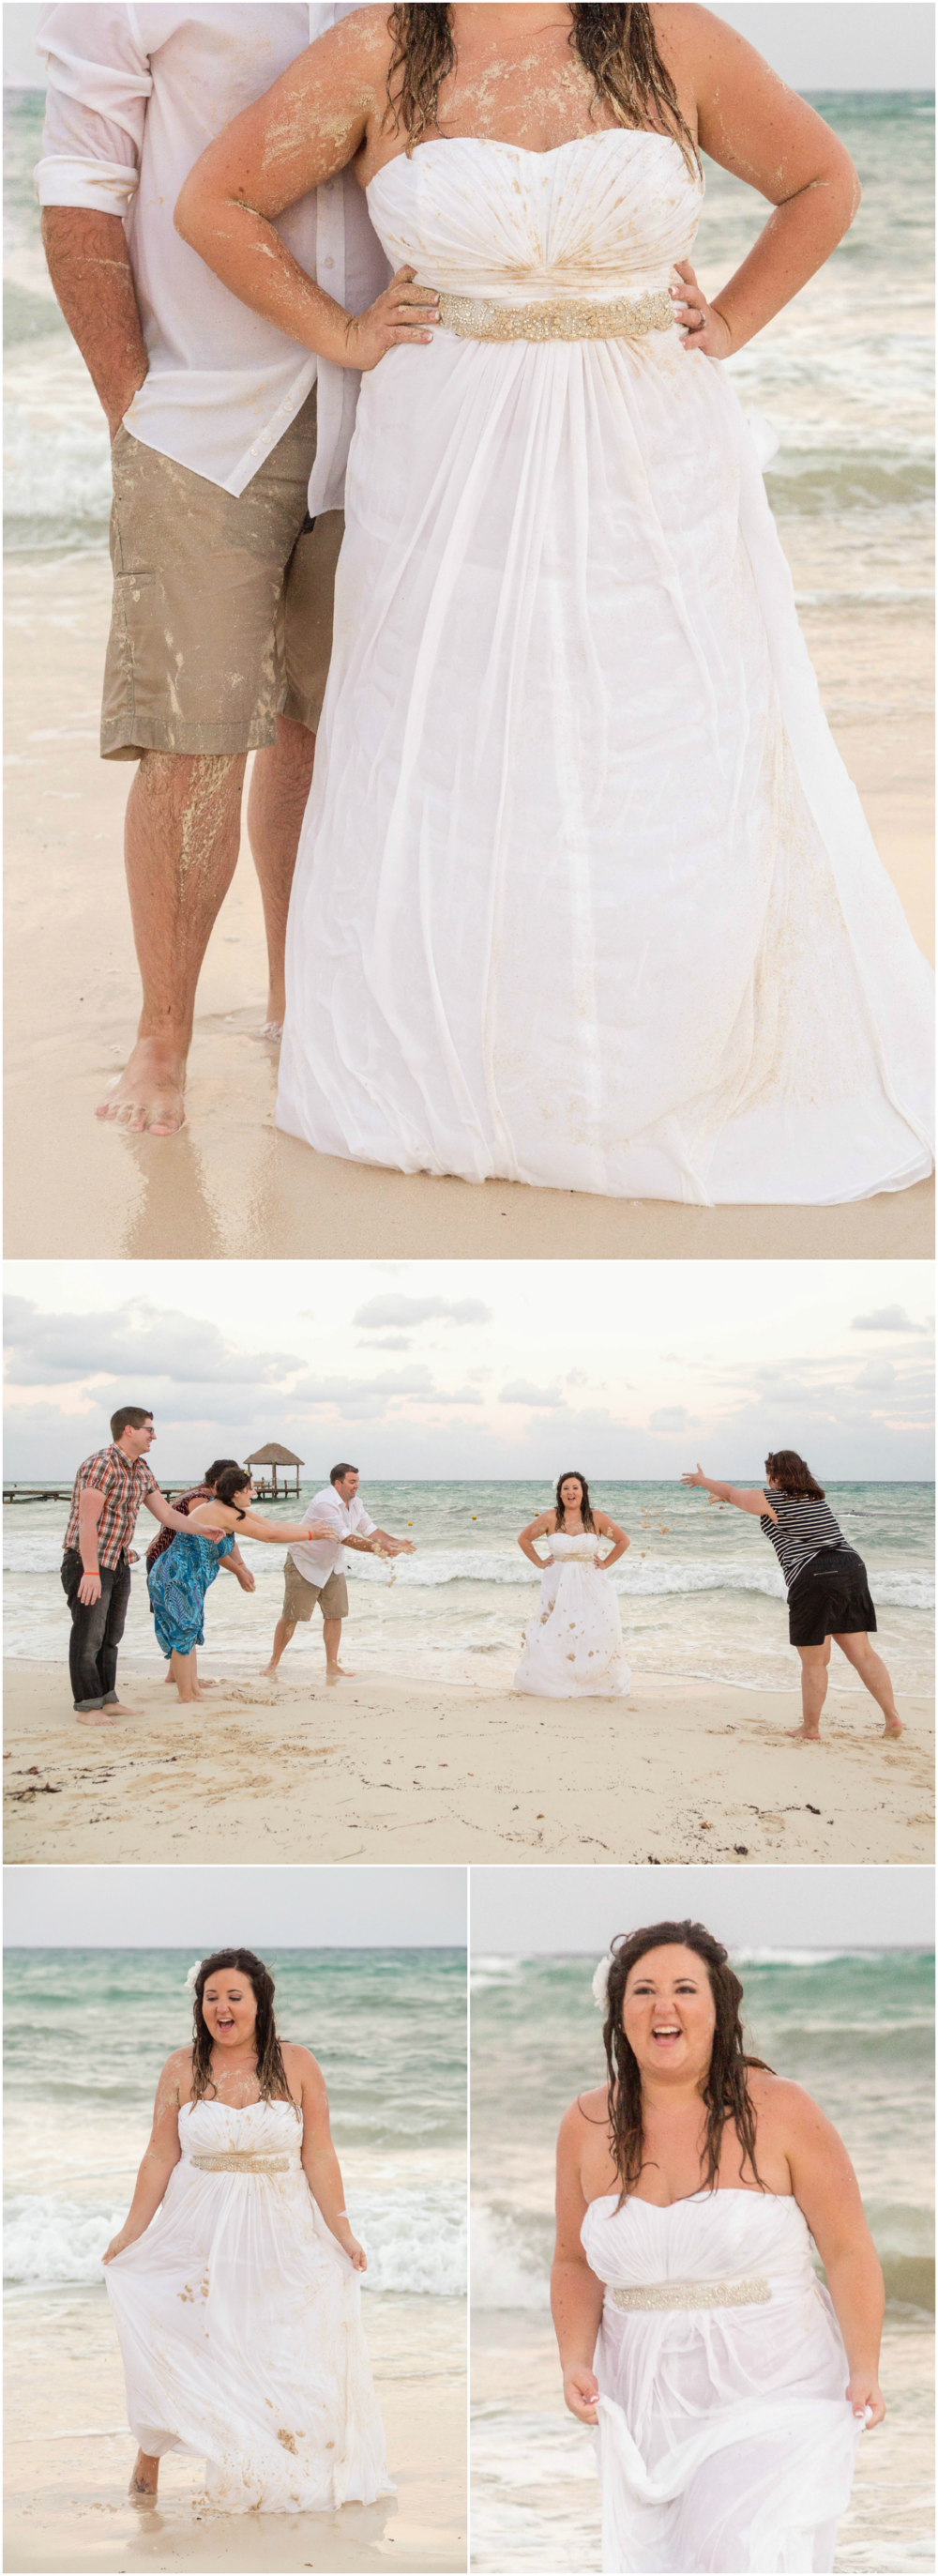 riviera-maya-wedding-ttd_10.png